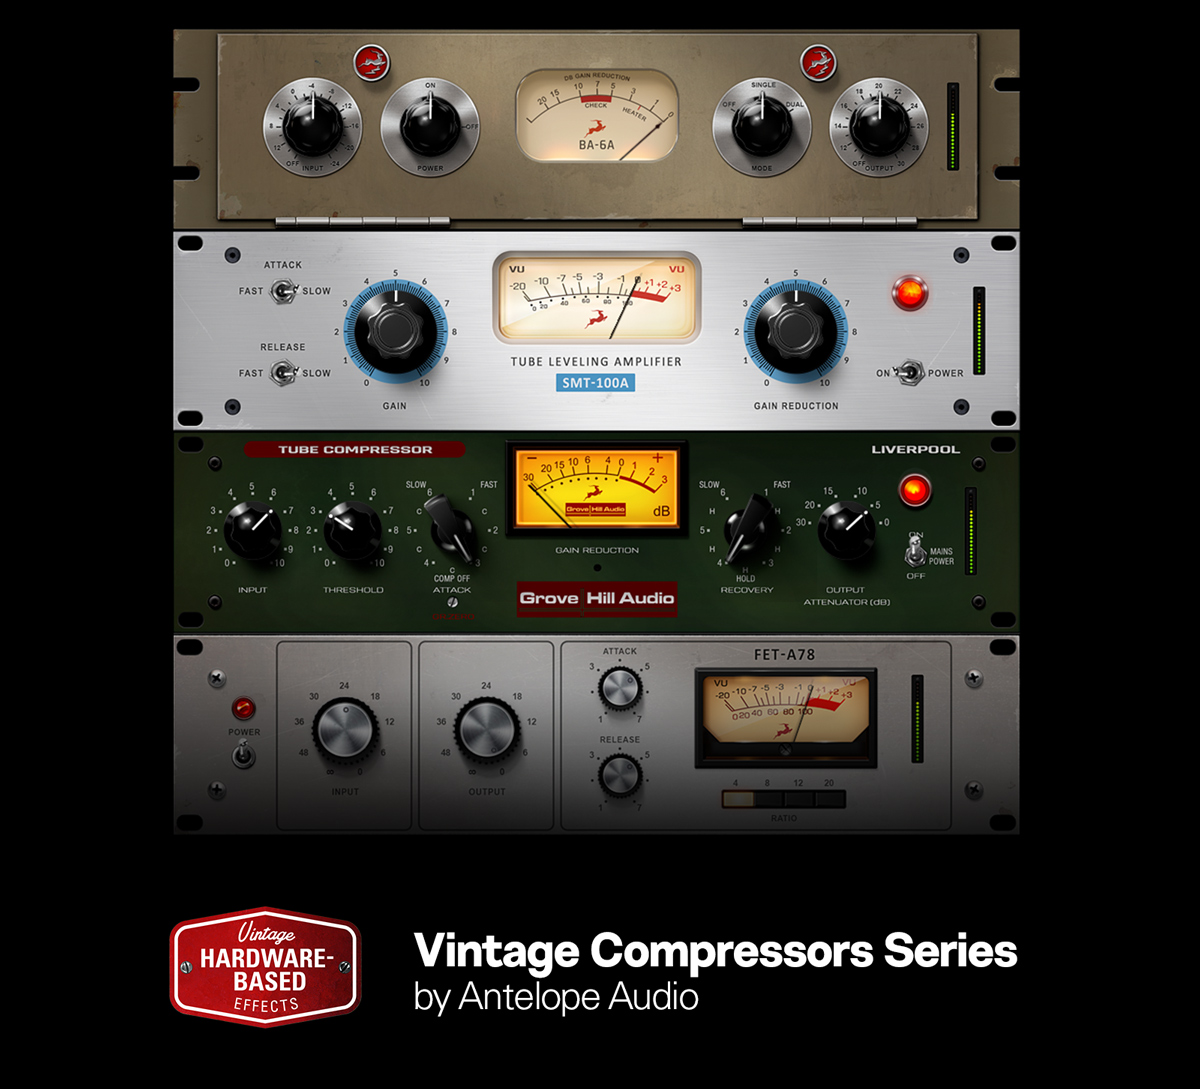 Compression quadrilogy triumph for Antelope's hardware-based effects library